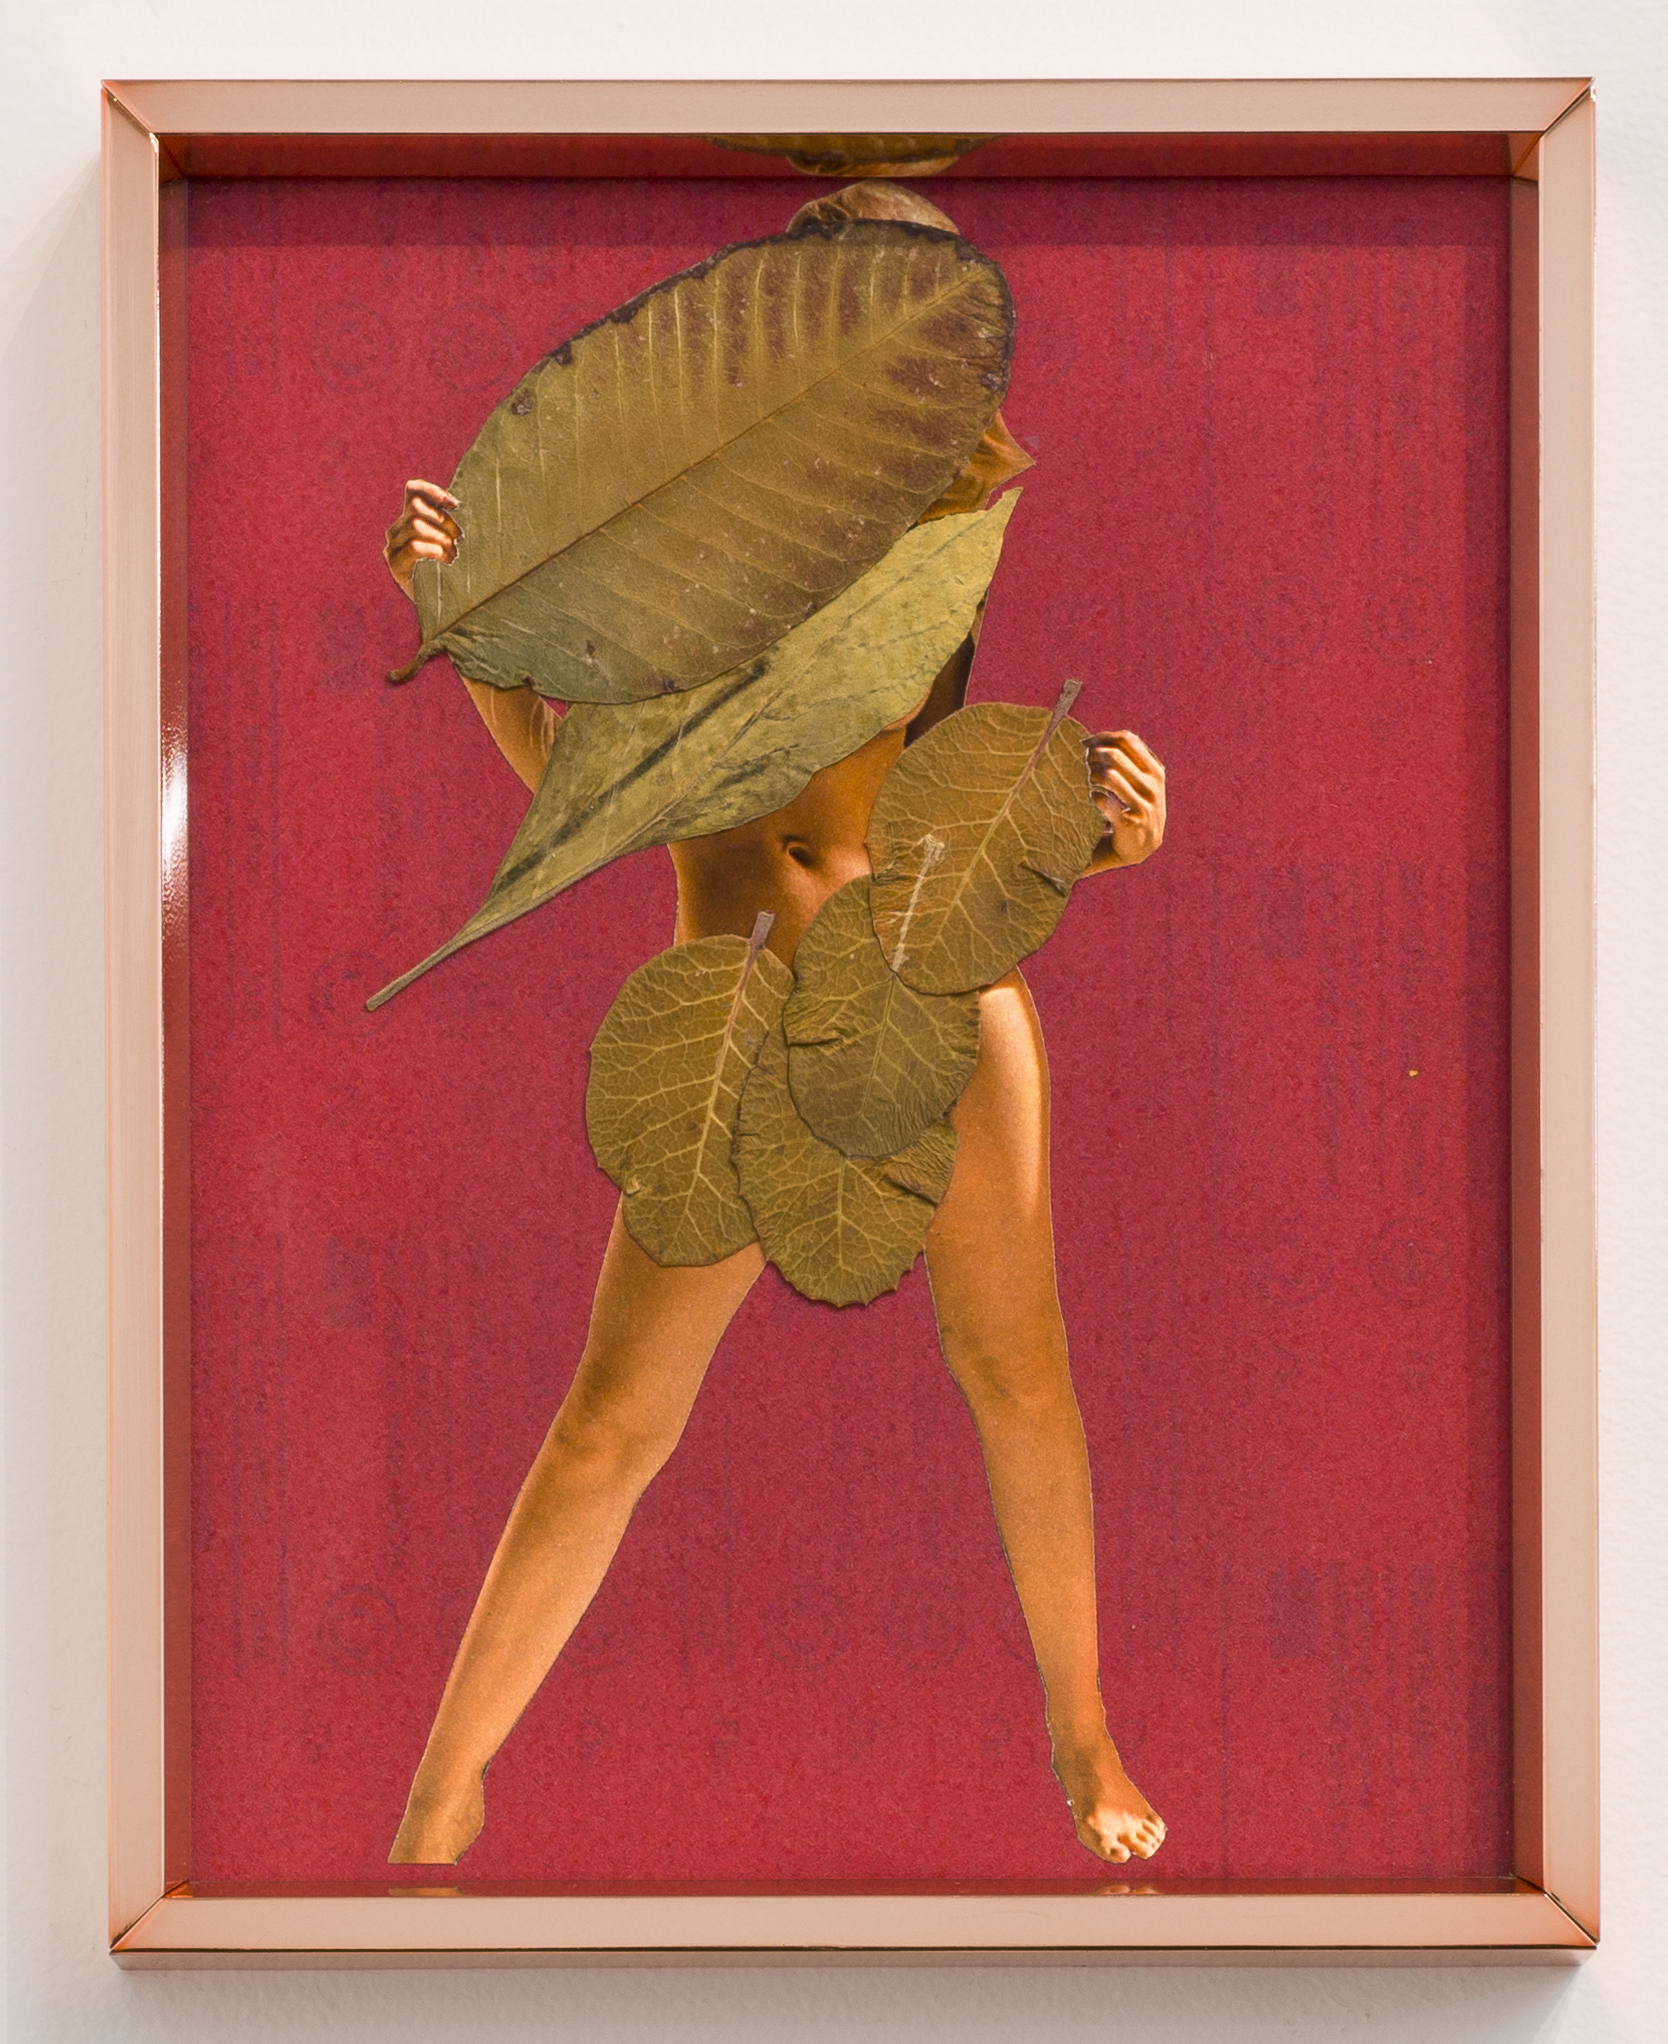 Karen Lofgren  Could You Name What Is To Cure? #4 , 2016 magazine image, guayaba leaf, and toe leaf on sandpaper in copper frame 10 3/4 x 8 1/2 in (27.3 x 21.6 cm)